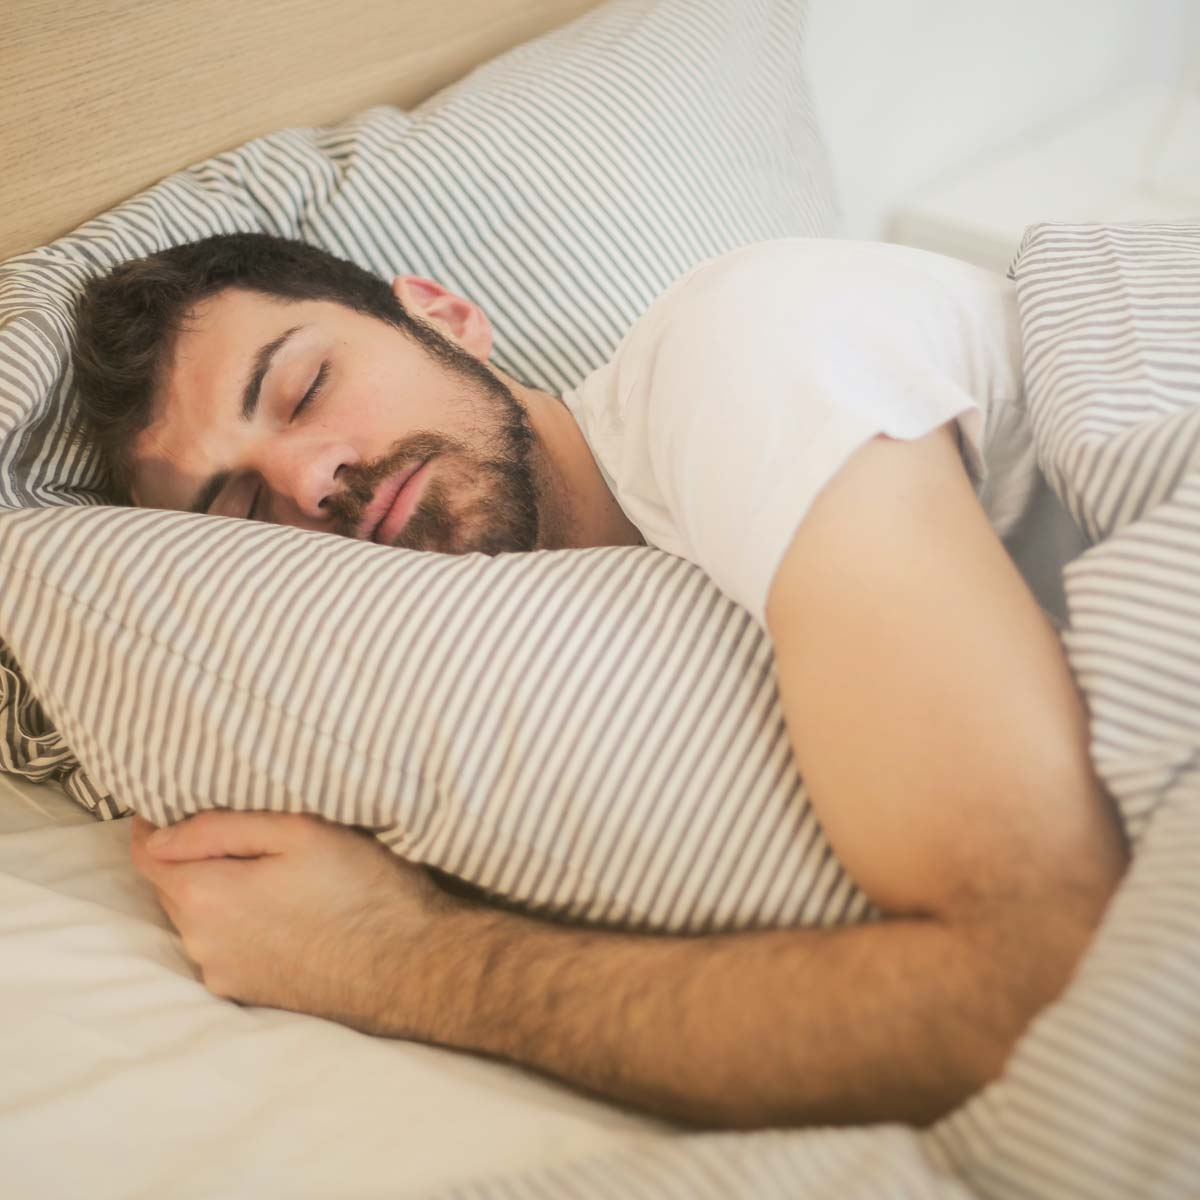 Man in a white T-shirt sleeps in a cozy, soft bed